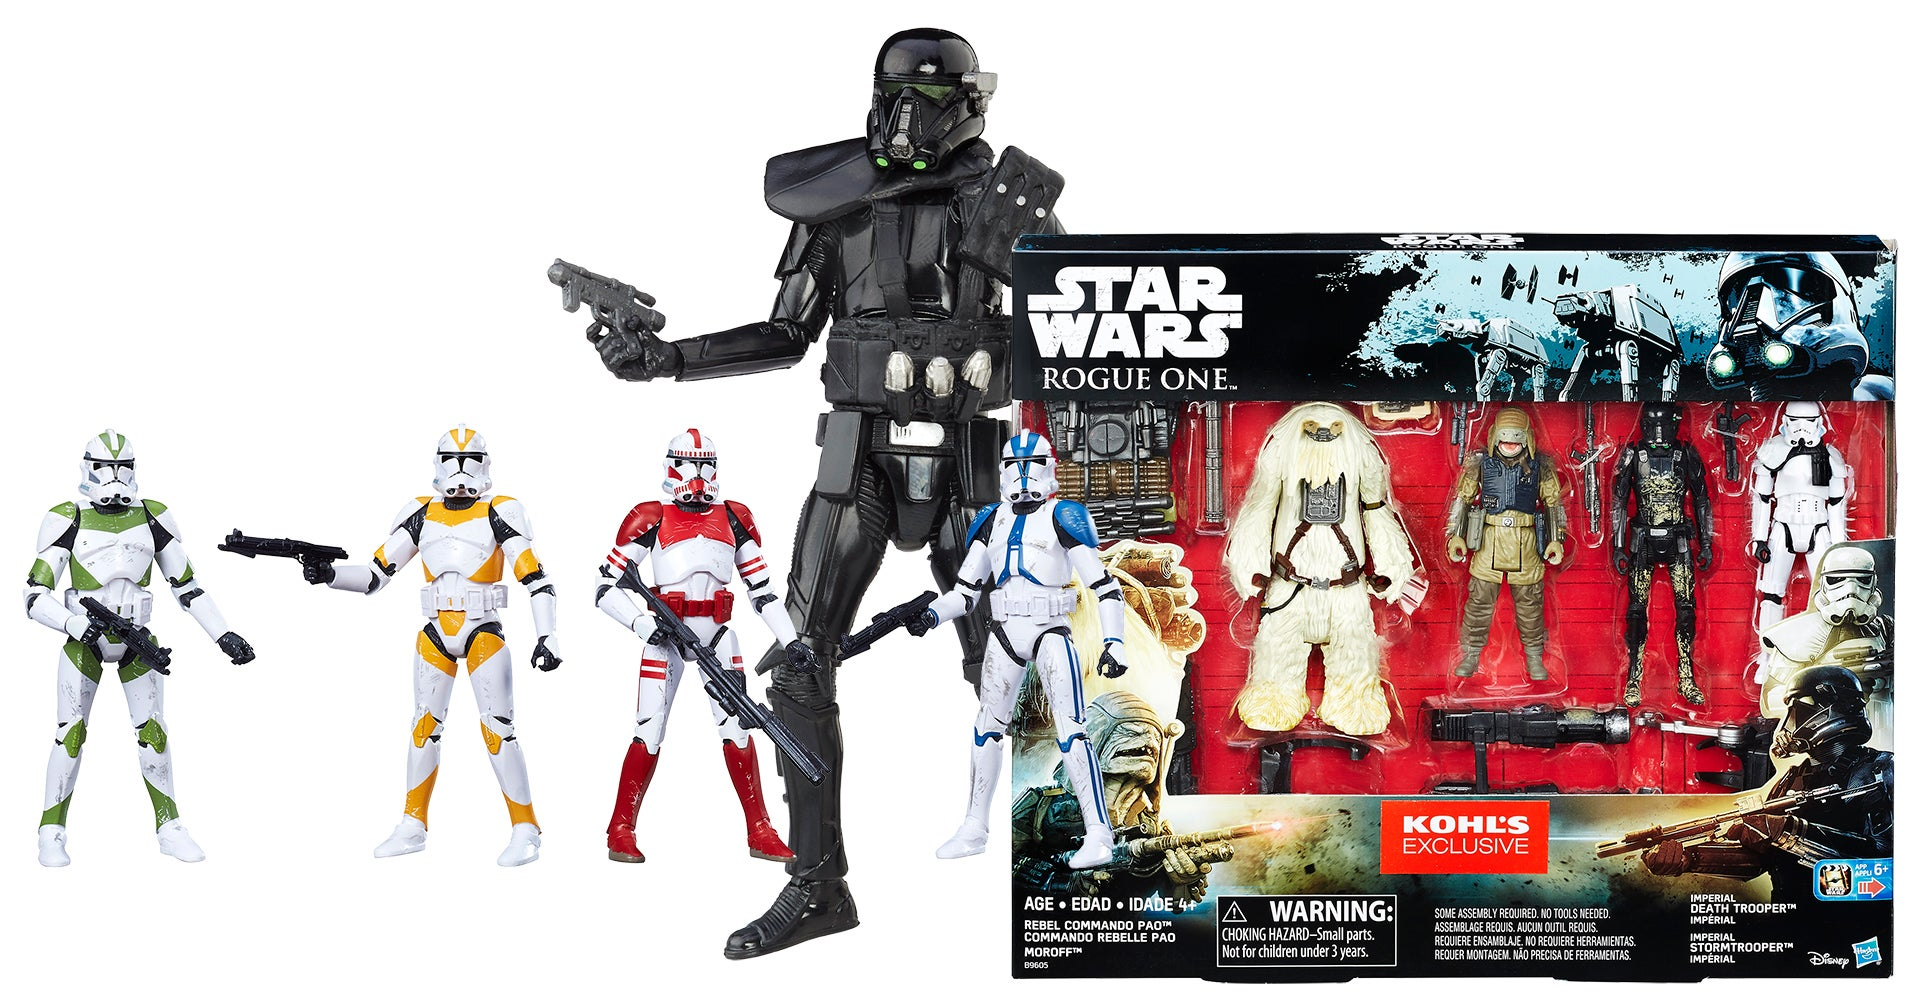 Keep Your Eyes Peeled For These Rogue One: A Star Wars Story Retailer Exclusives